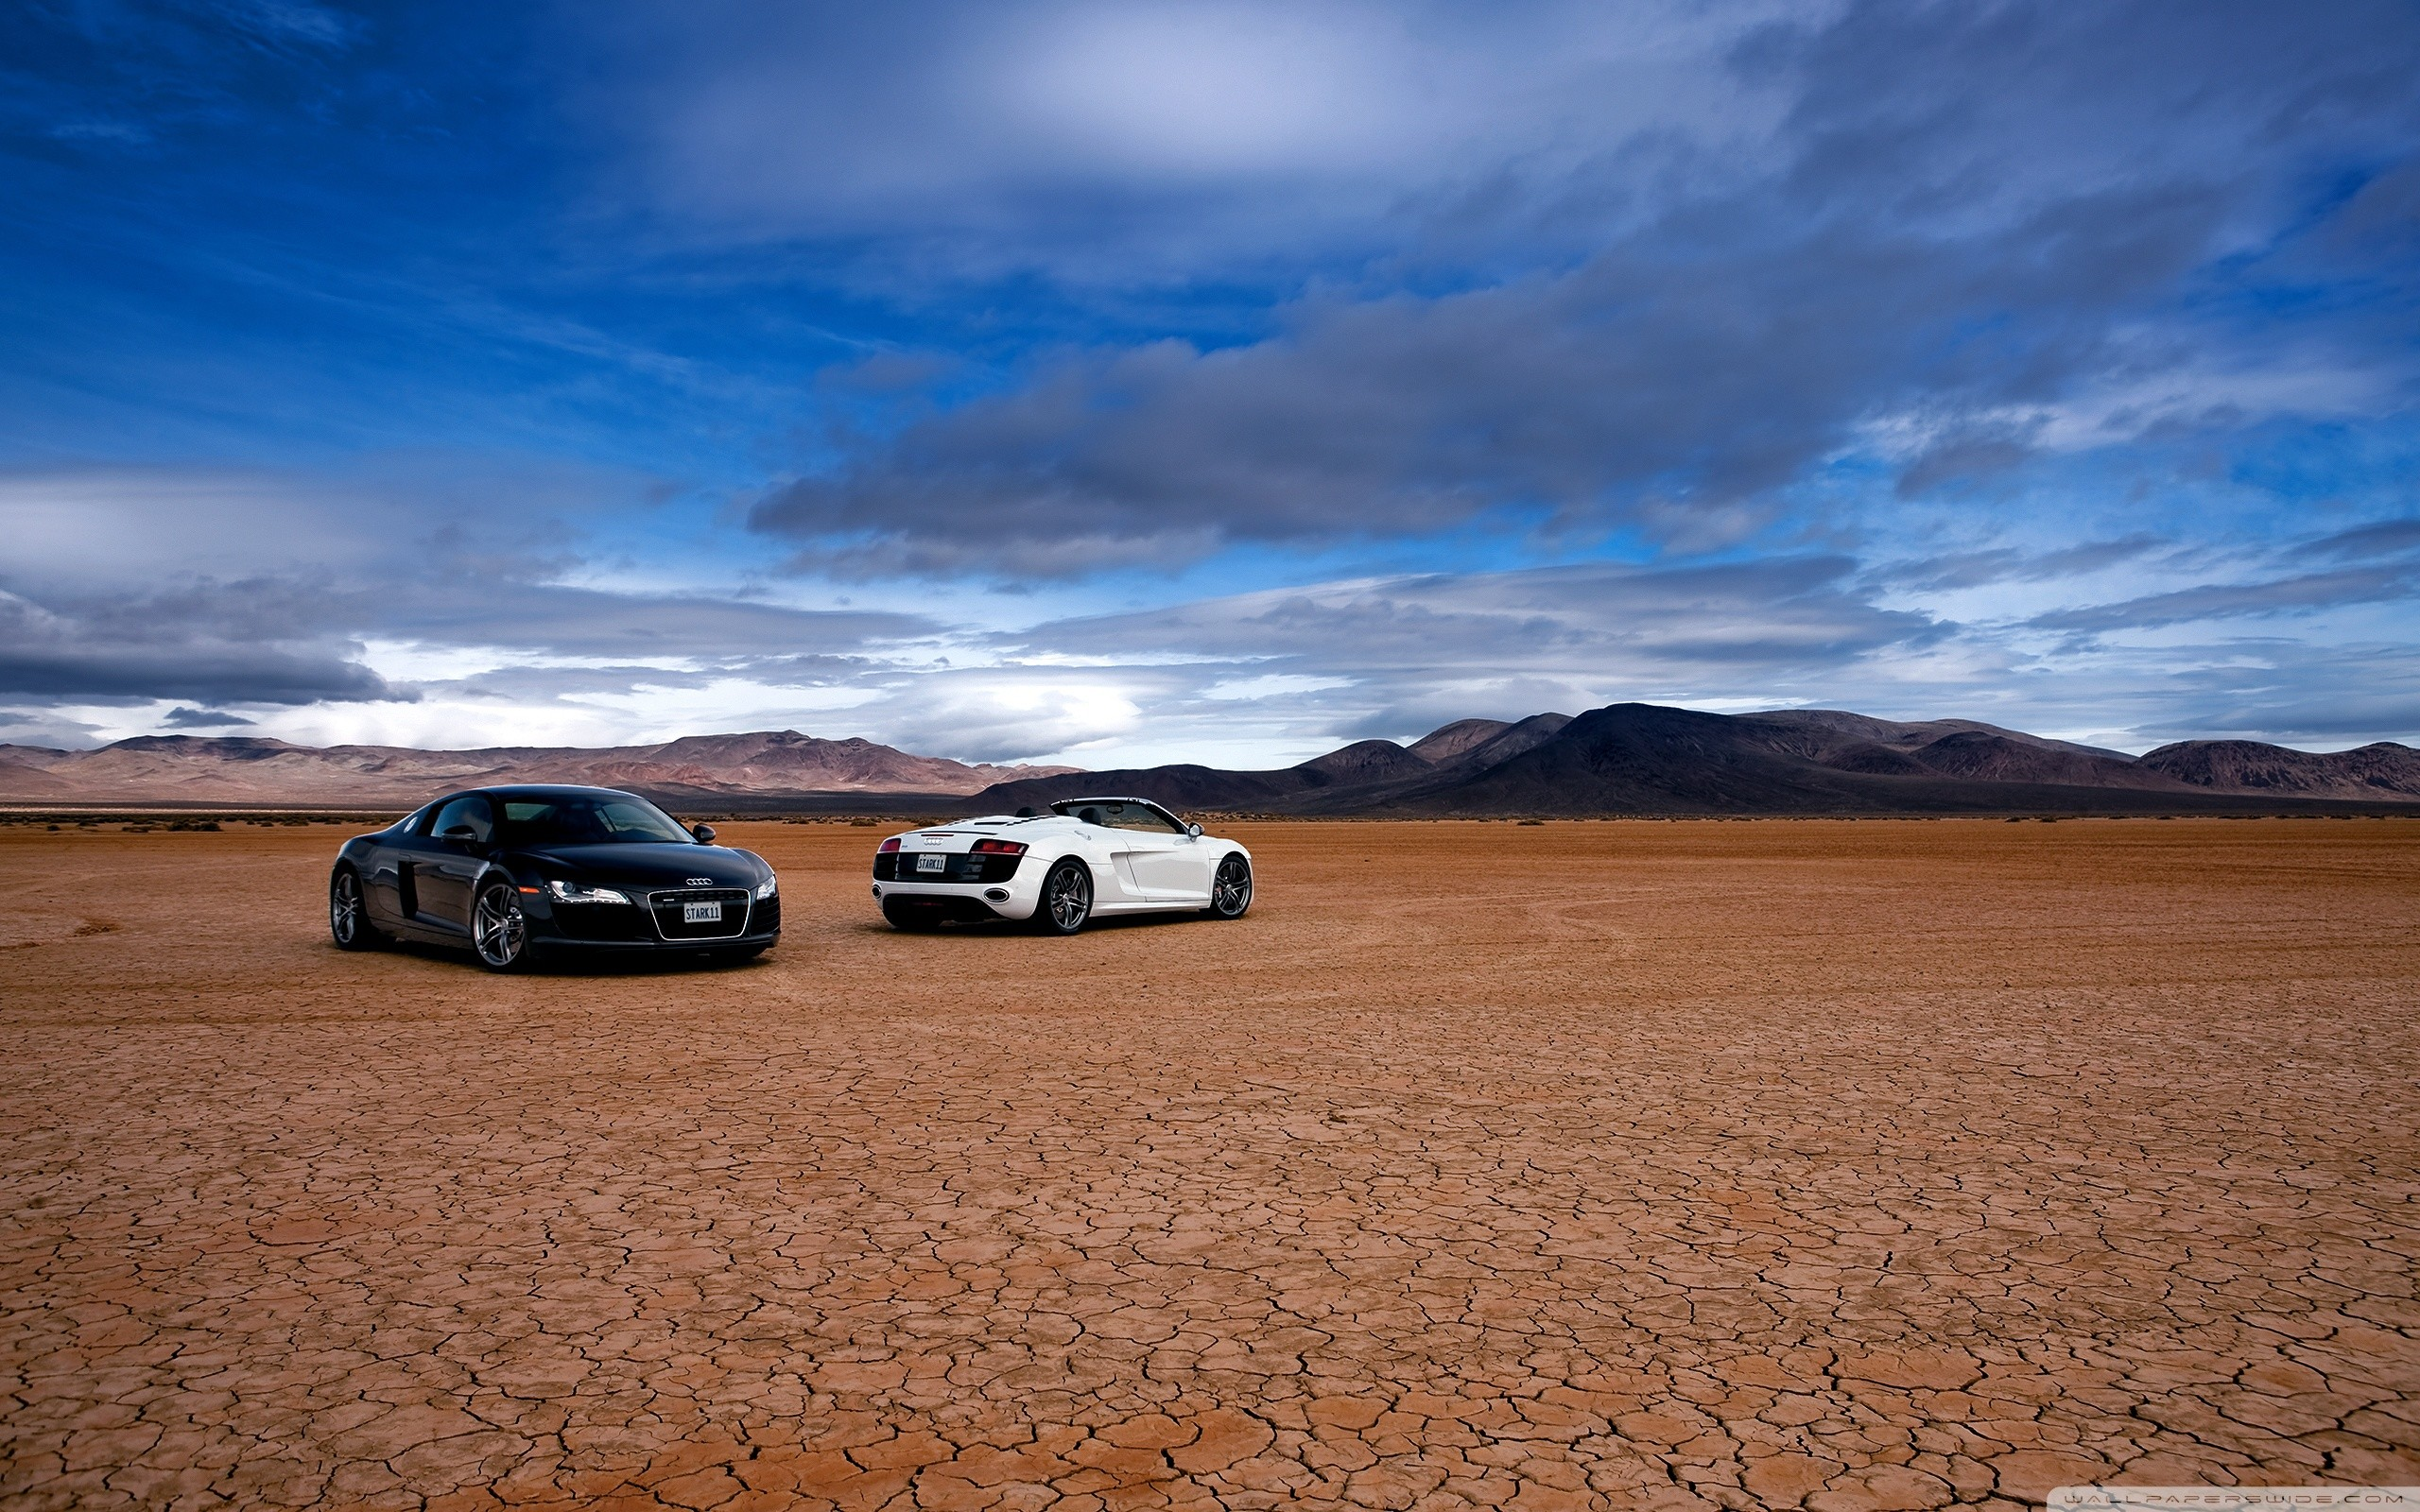 2560x1600 Audi R8 In The Desert HD Wide Wallpaper for Widescreen